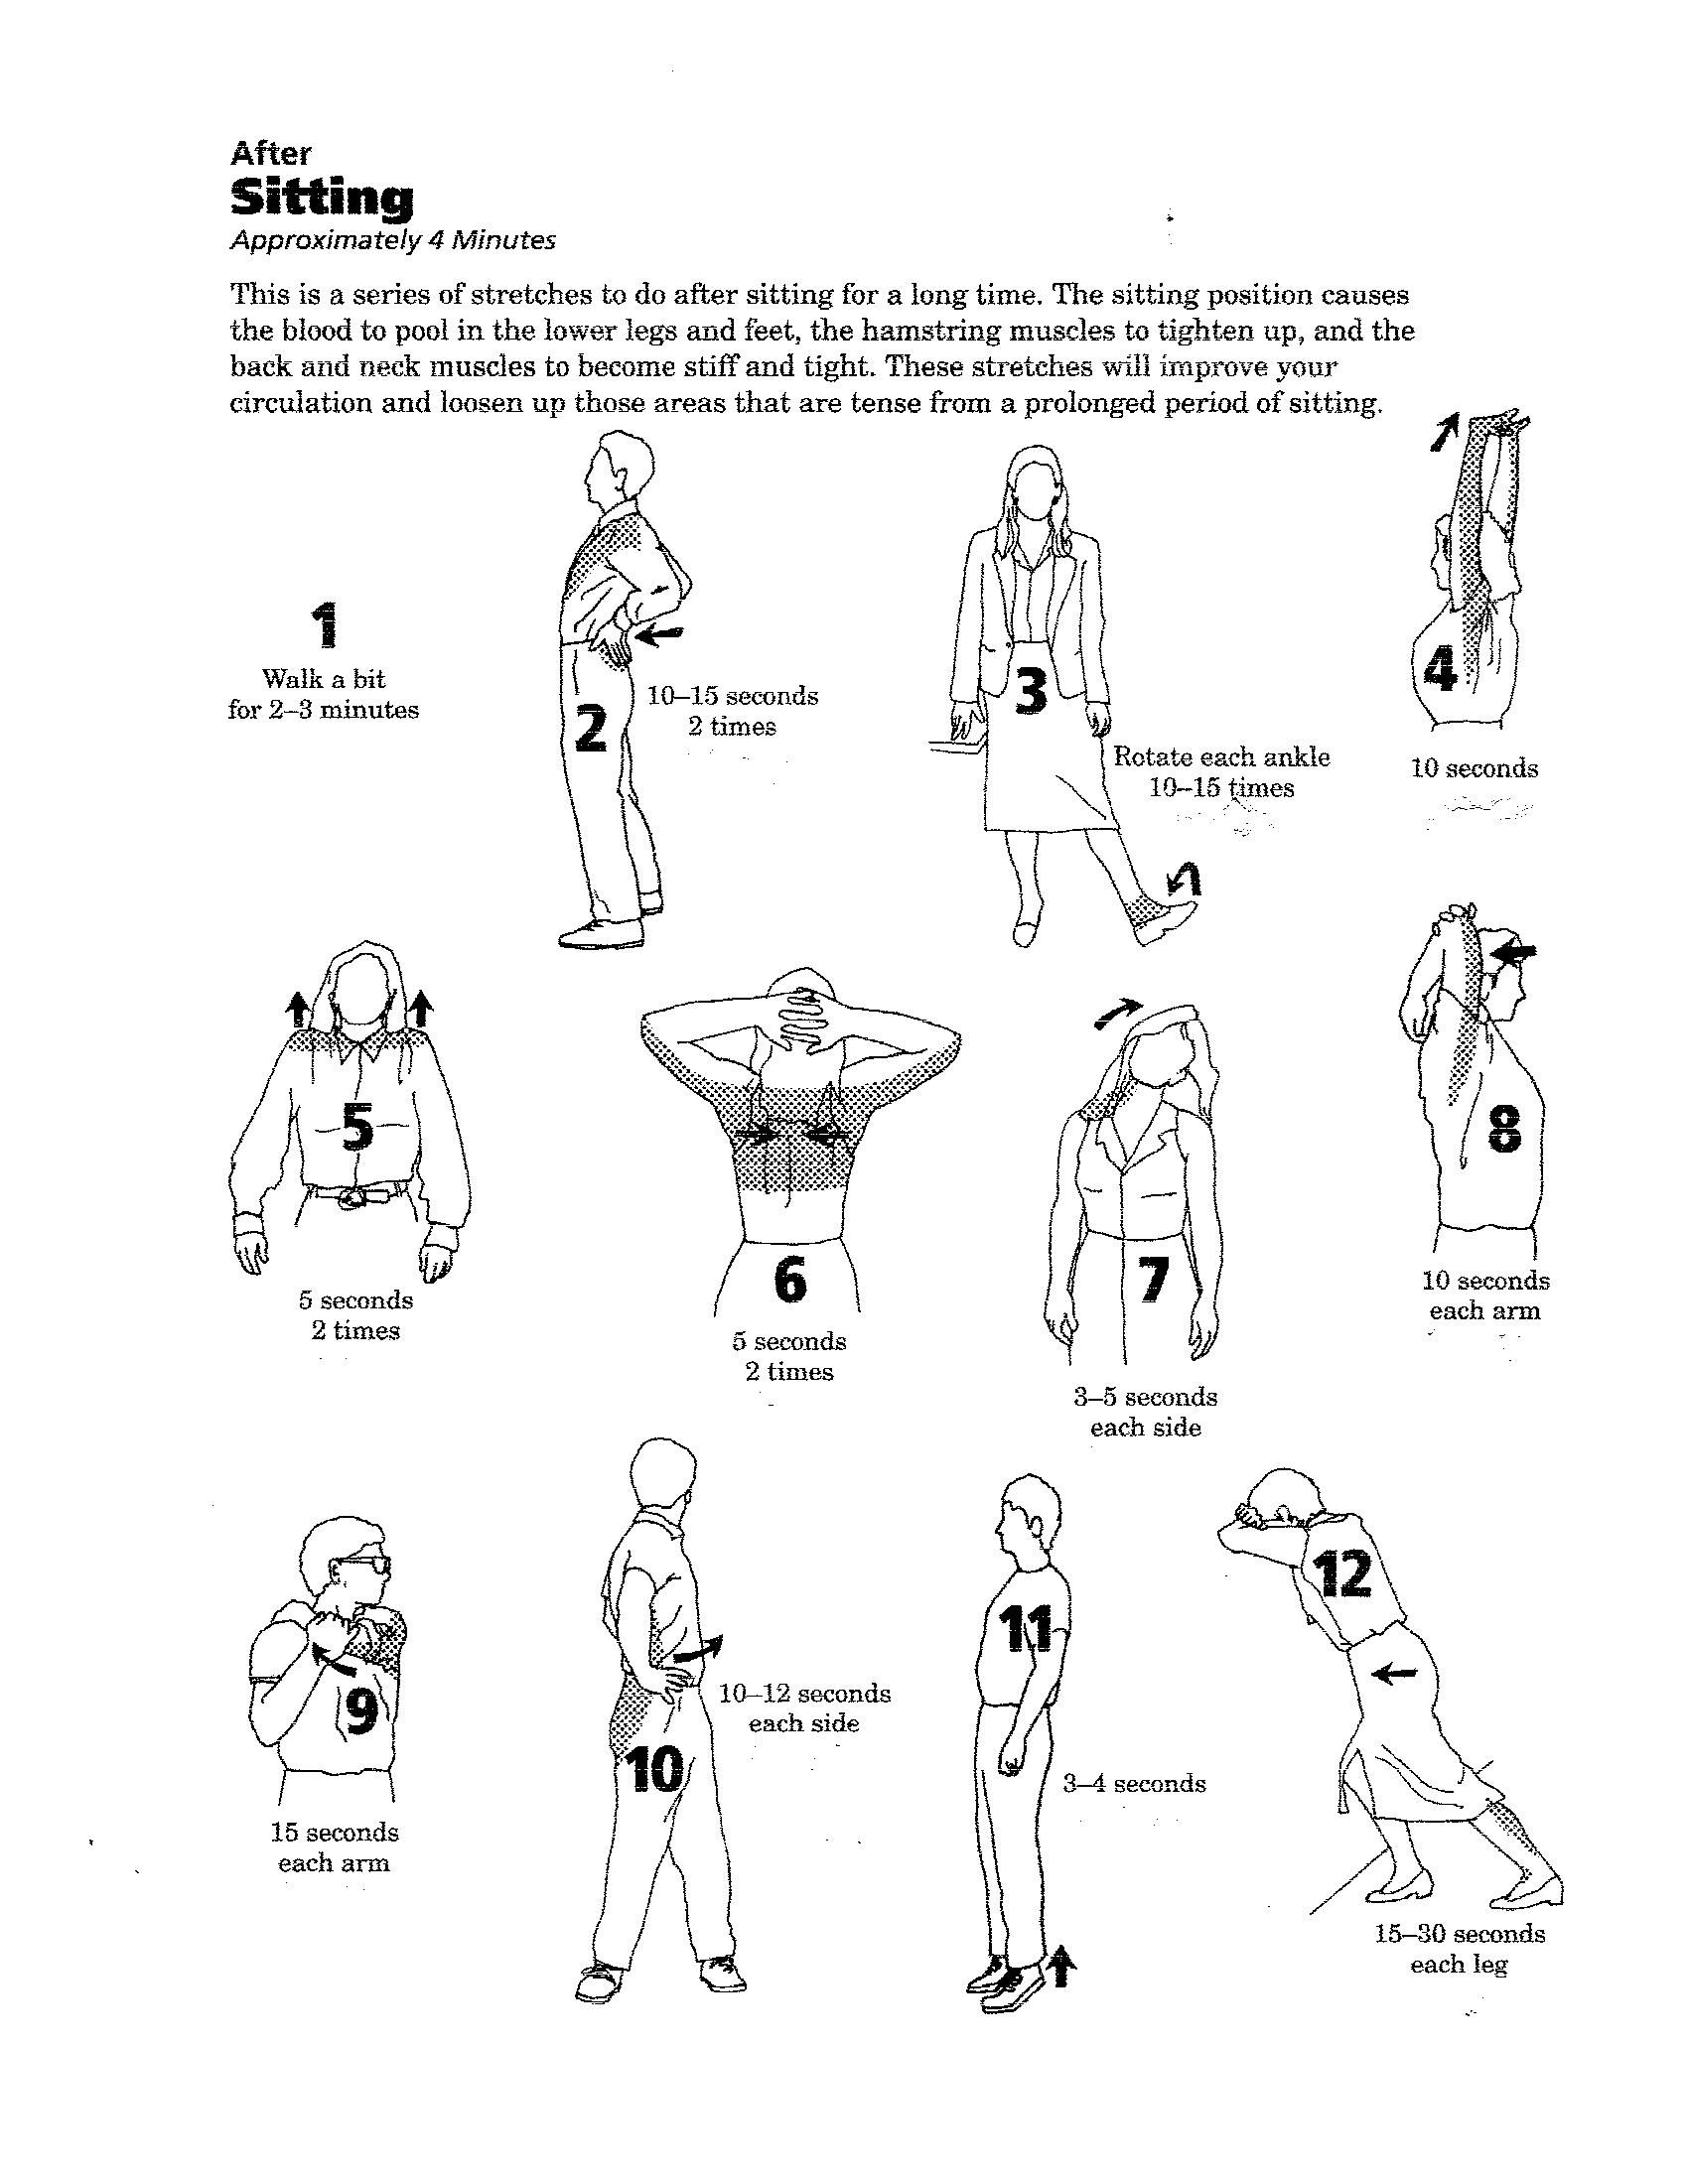 Back Exercises For Upper Back Pain At Home